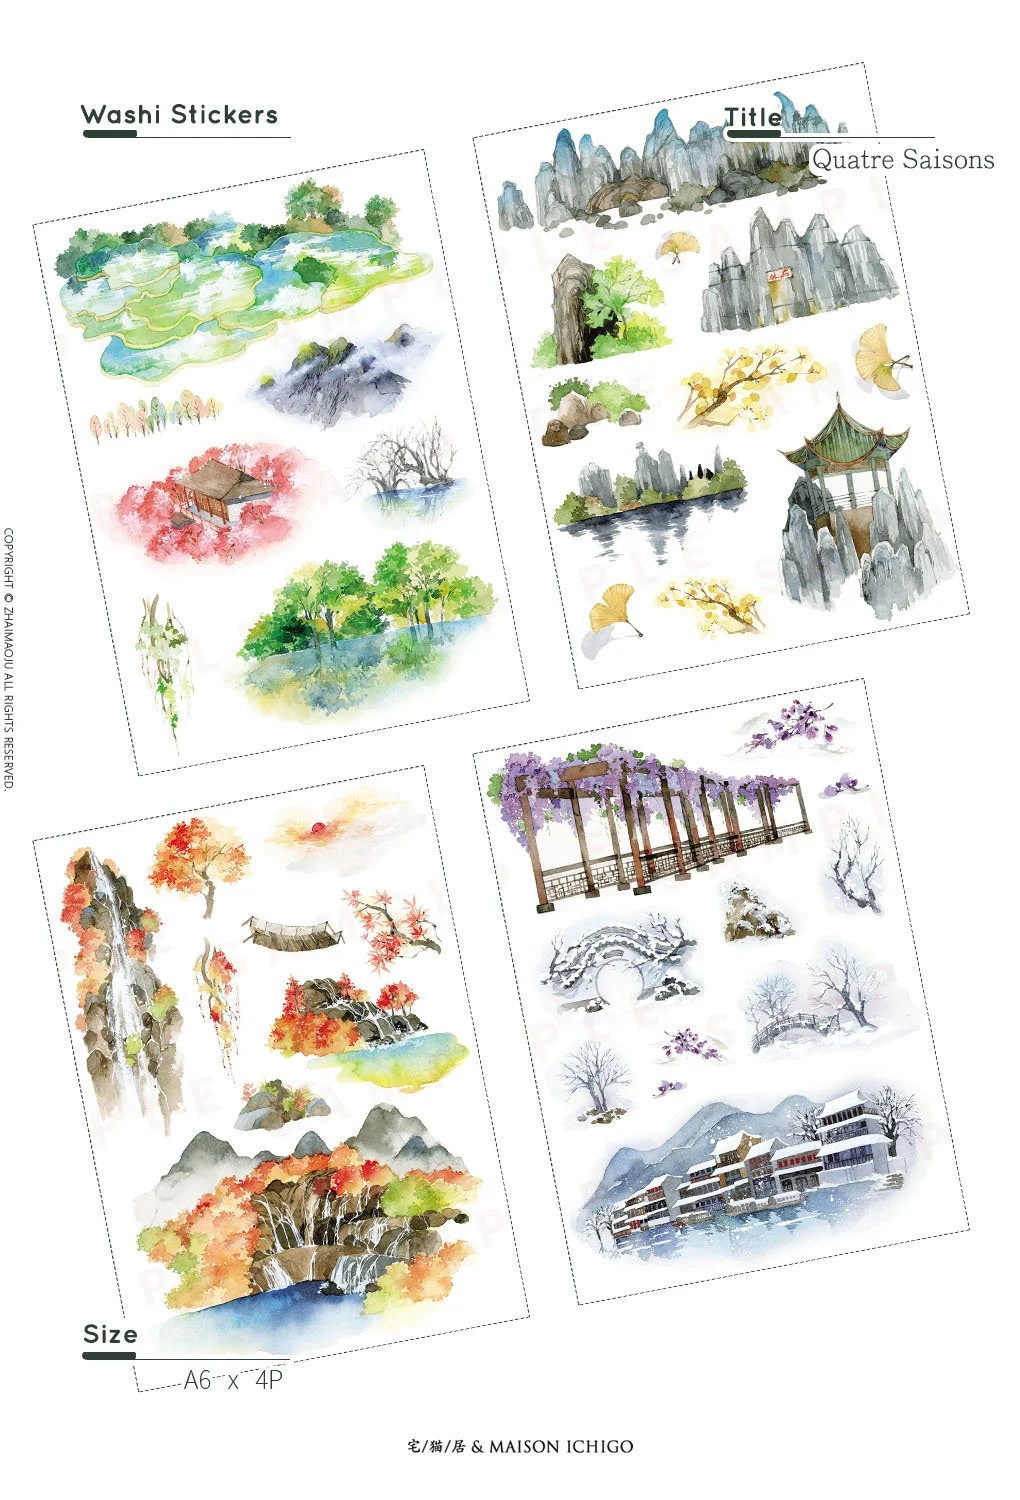 Journal Decoration Maison 2 4 Sheets Of Washi Stickers Four Seasons Edition Niwa Bullet Journal Diary Decoration